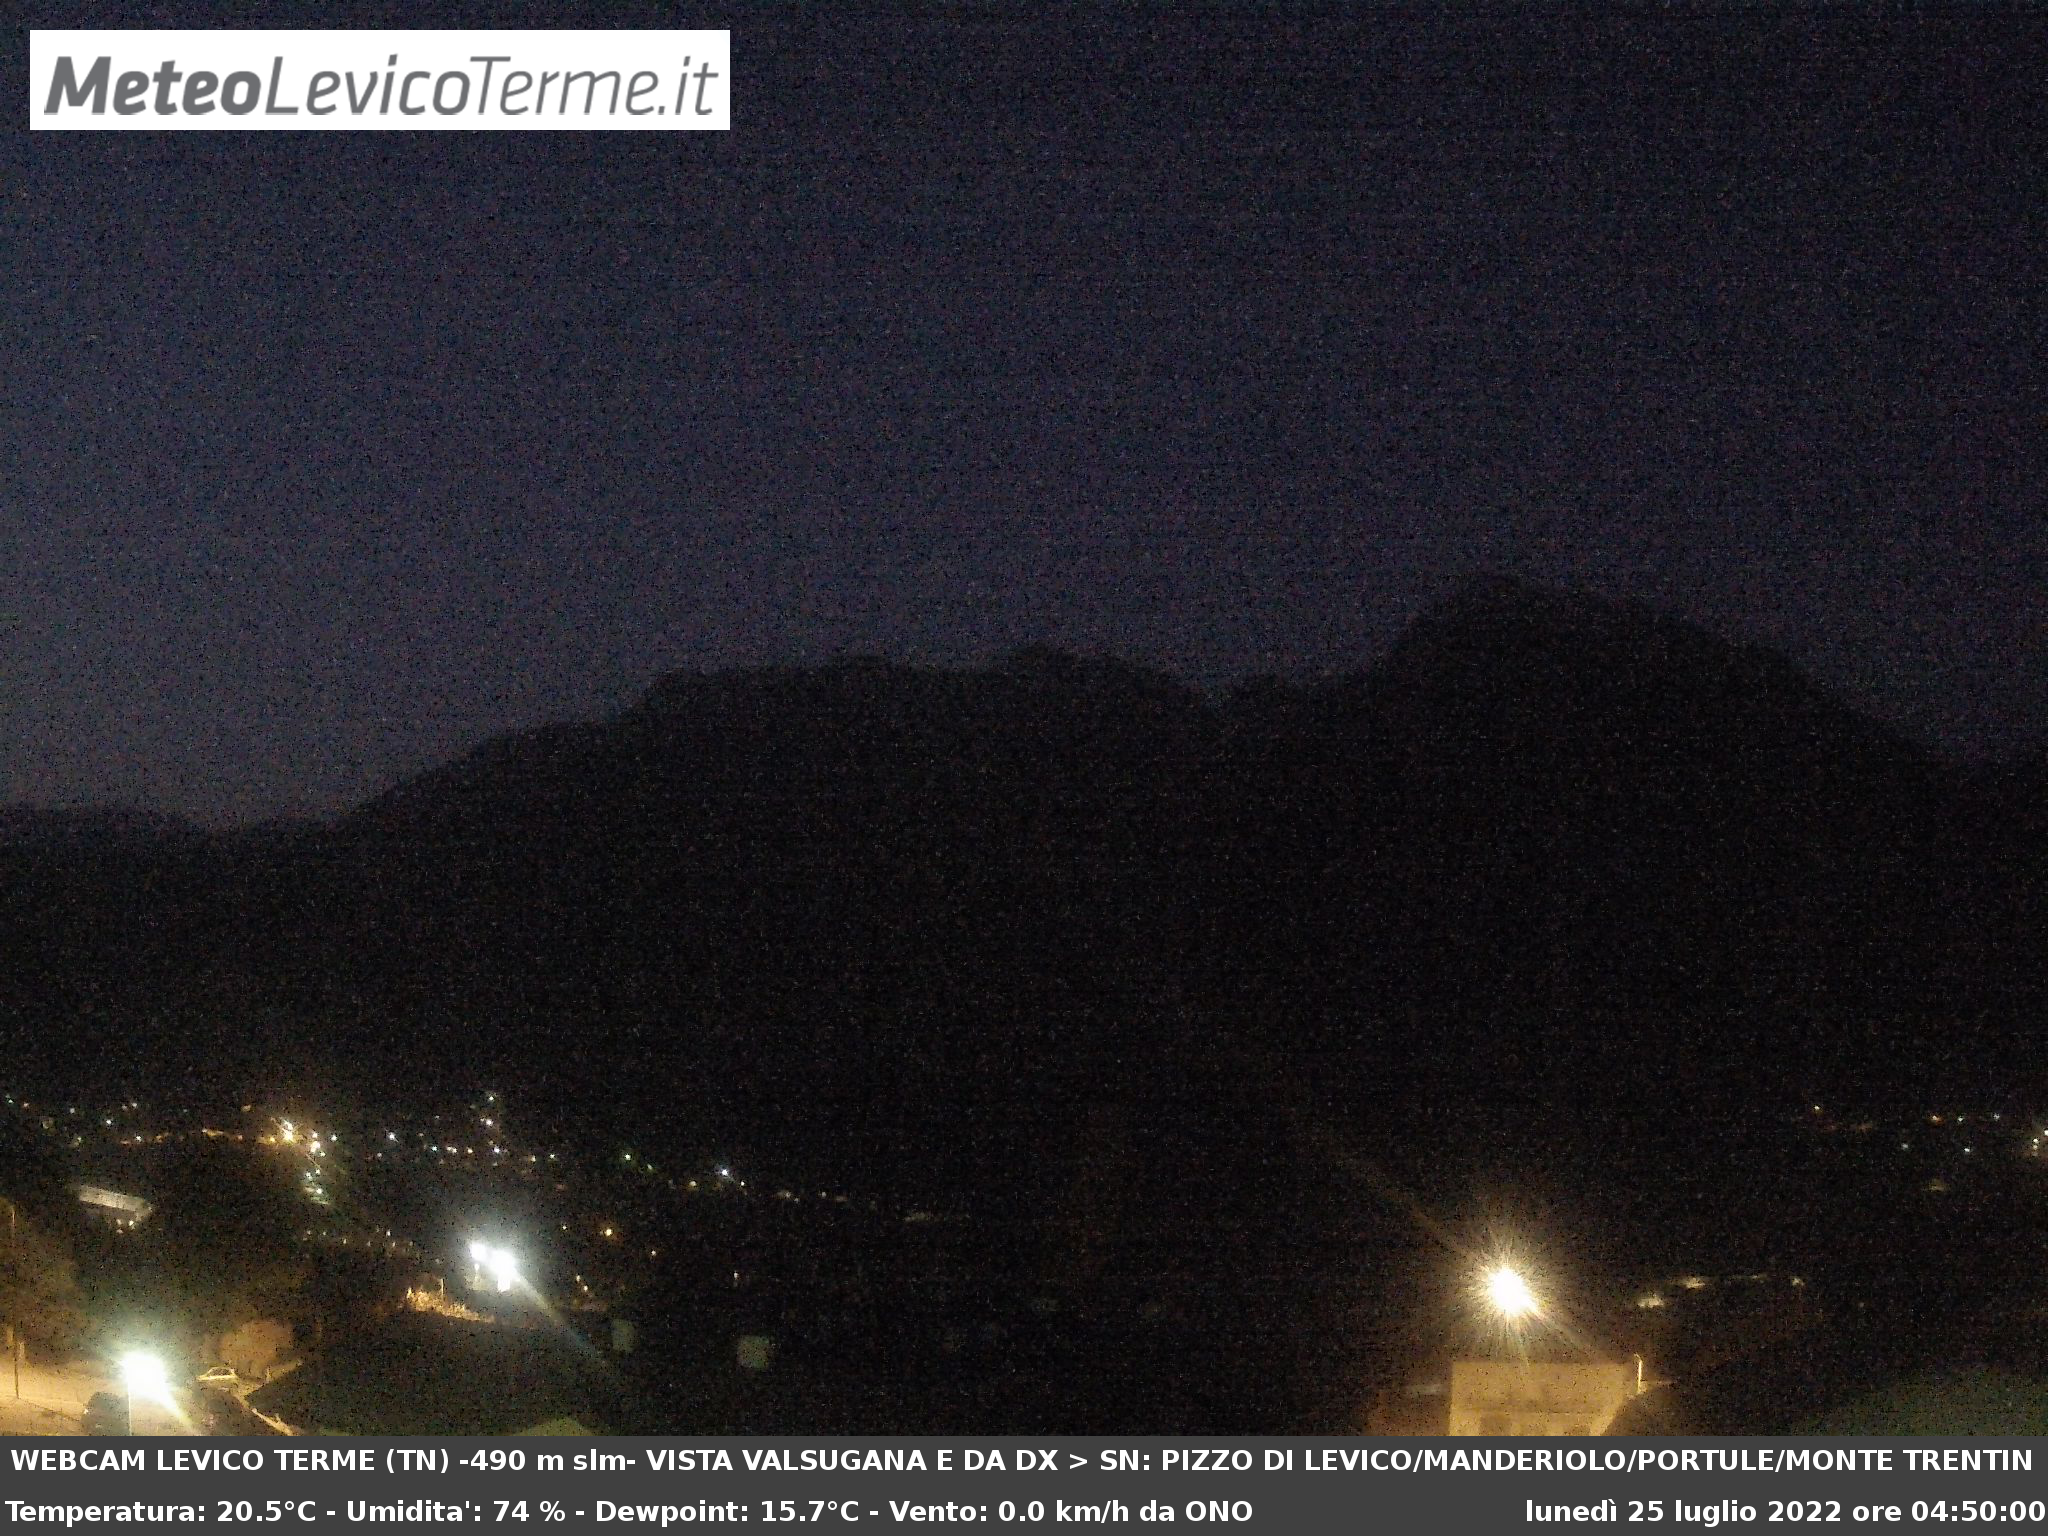 Webcam MeteoLevicoTerme